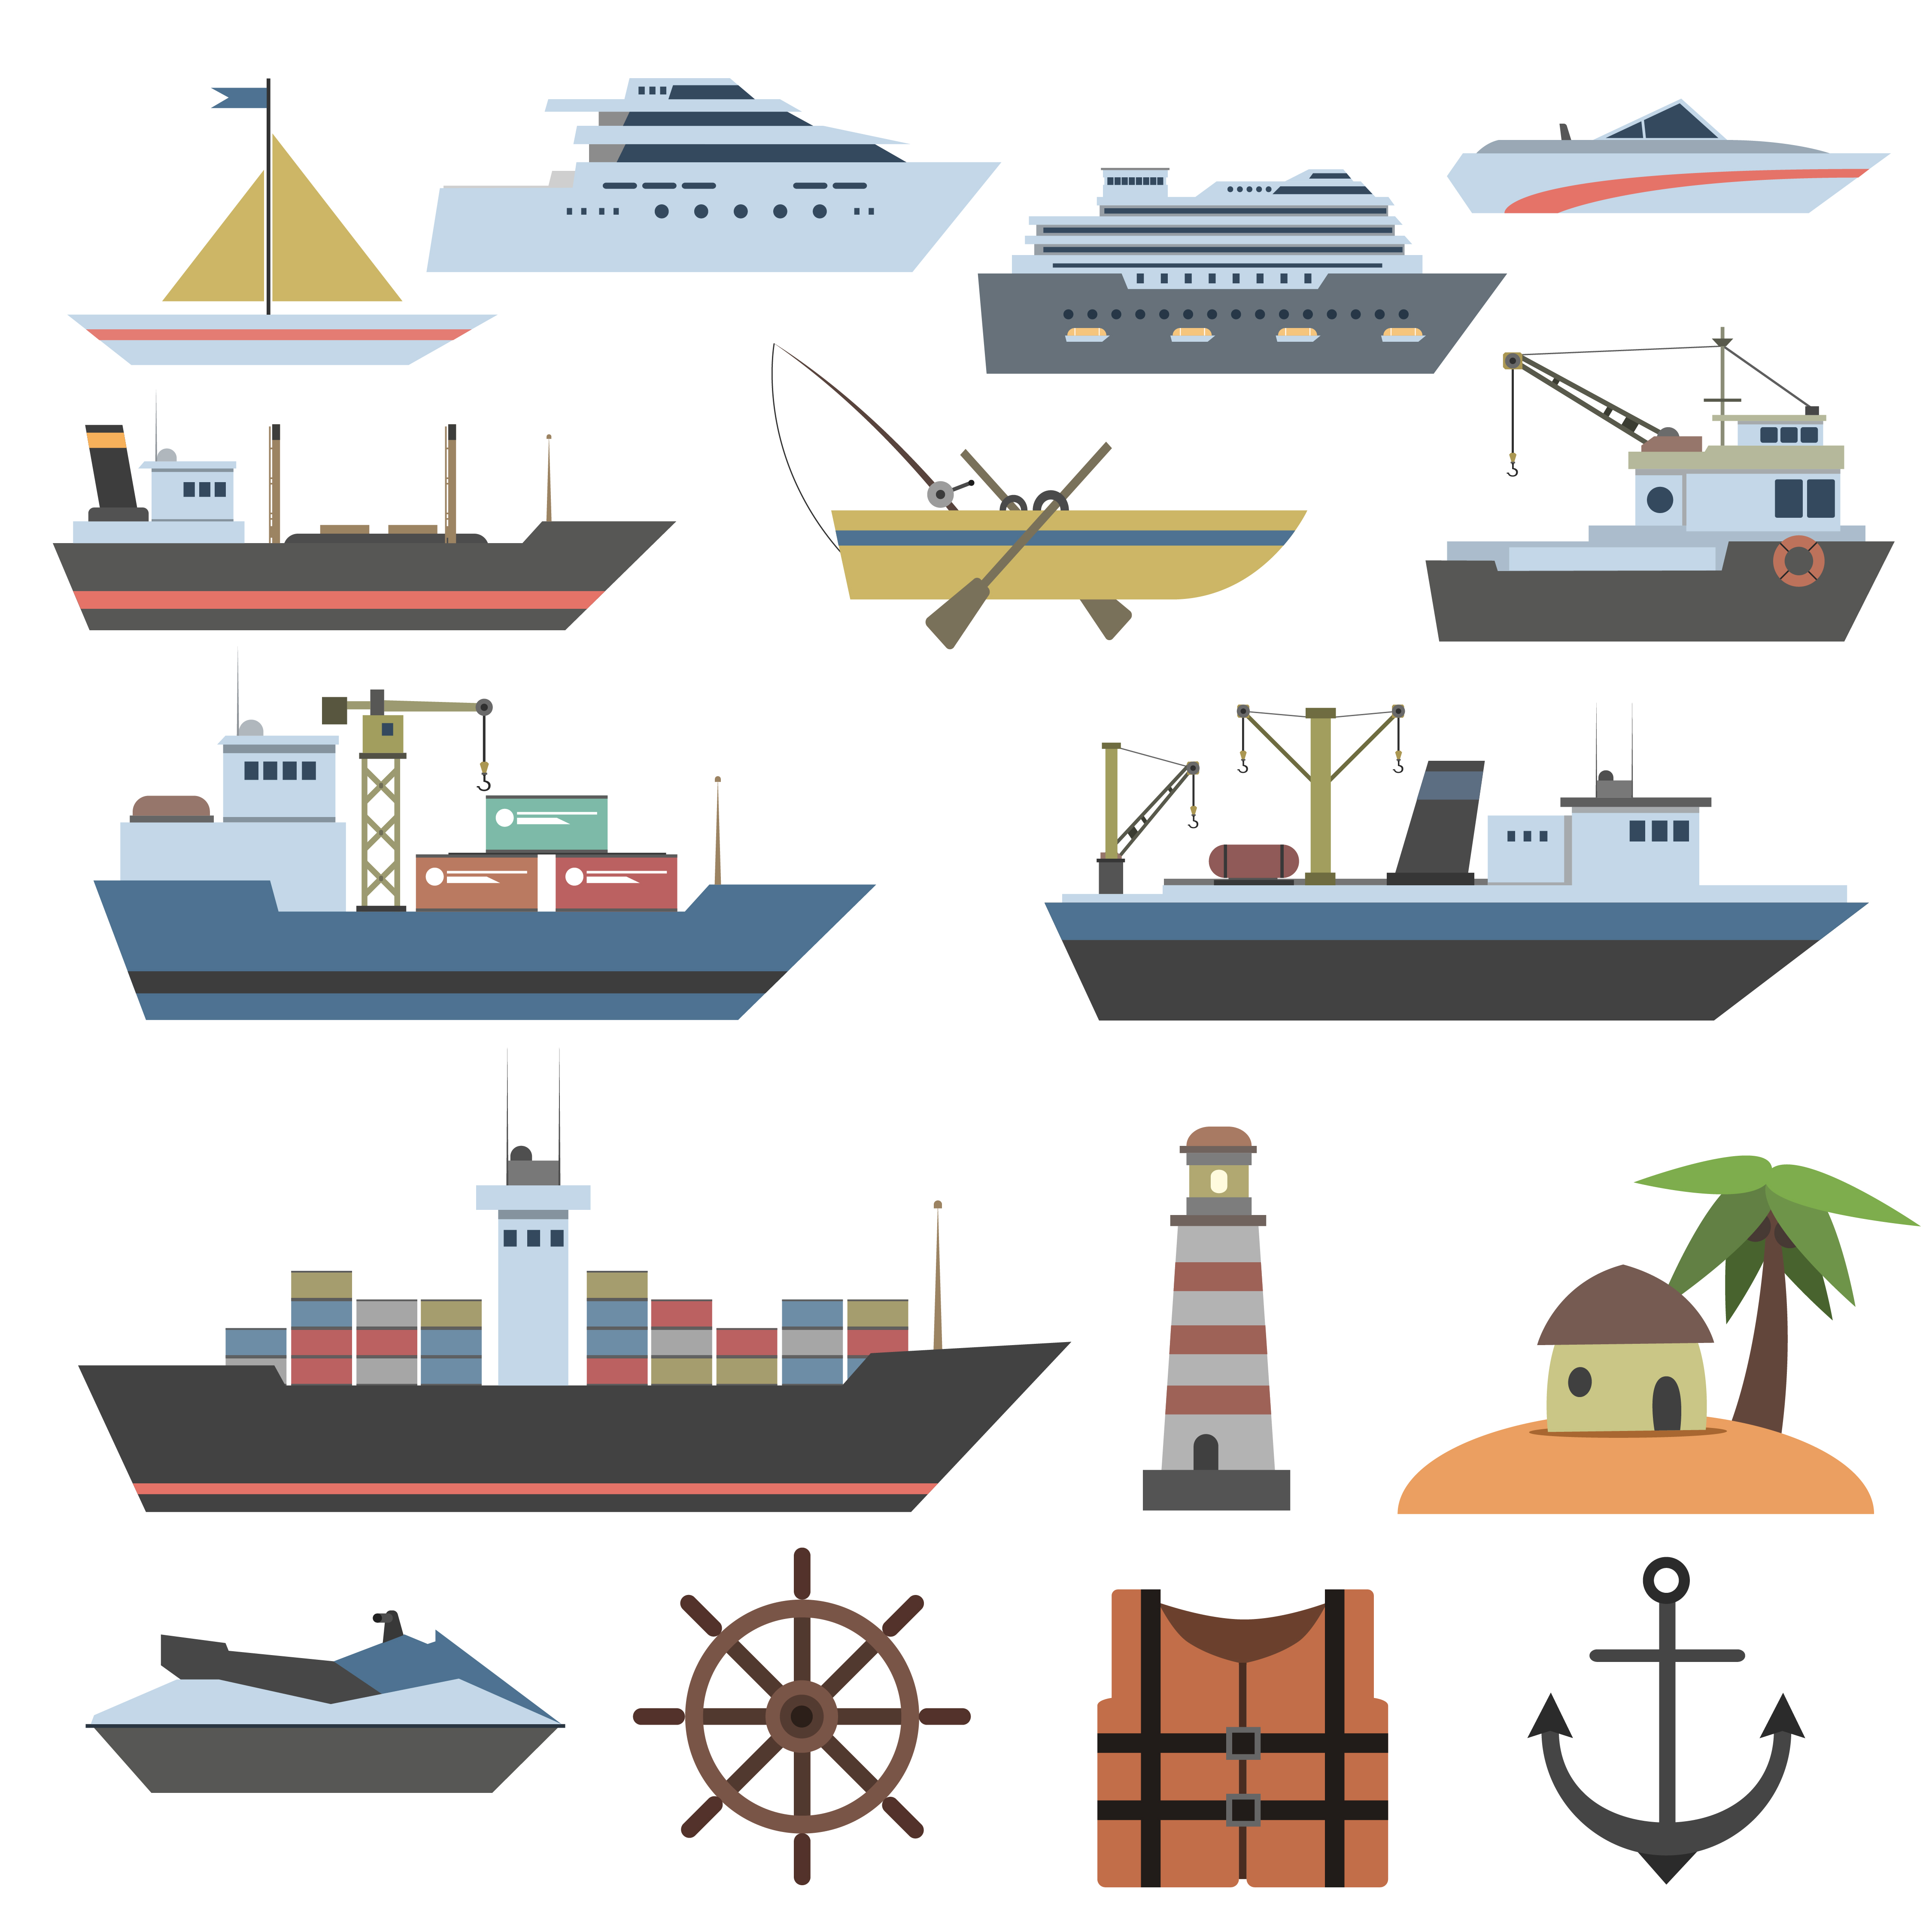 Video Game Logo Collection With Flat Design: Ship Flat Icon 463073 Vector Art At Vecteezy